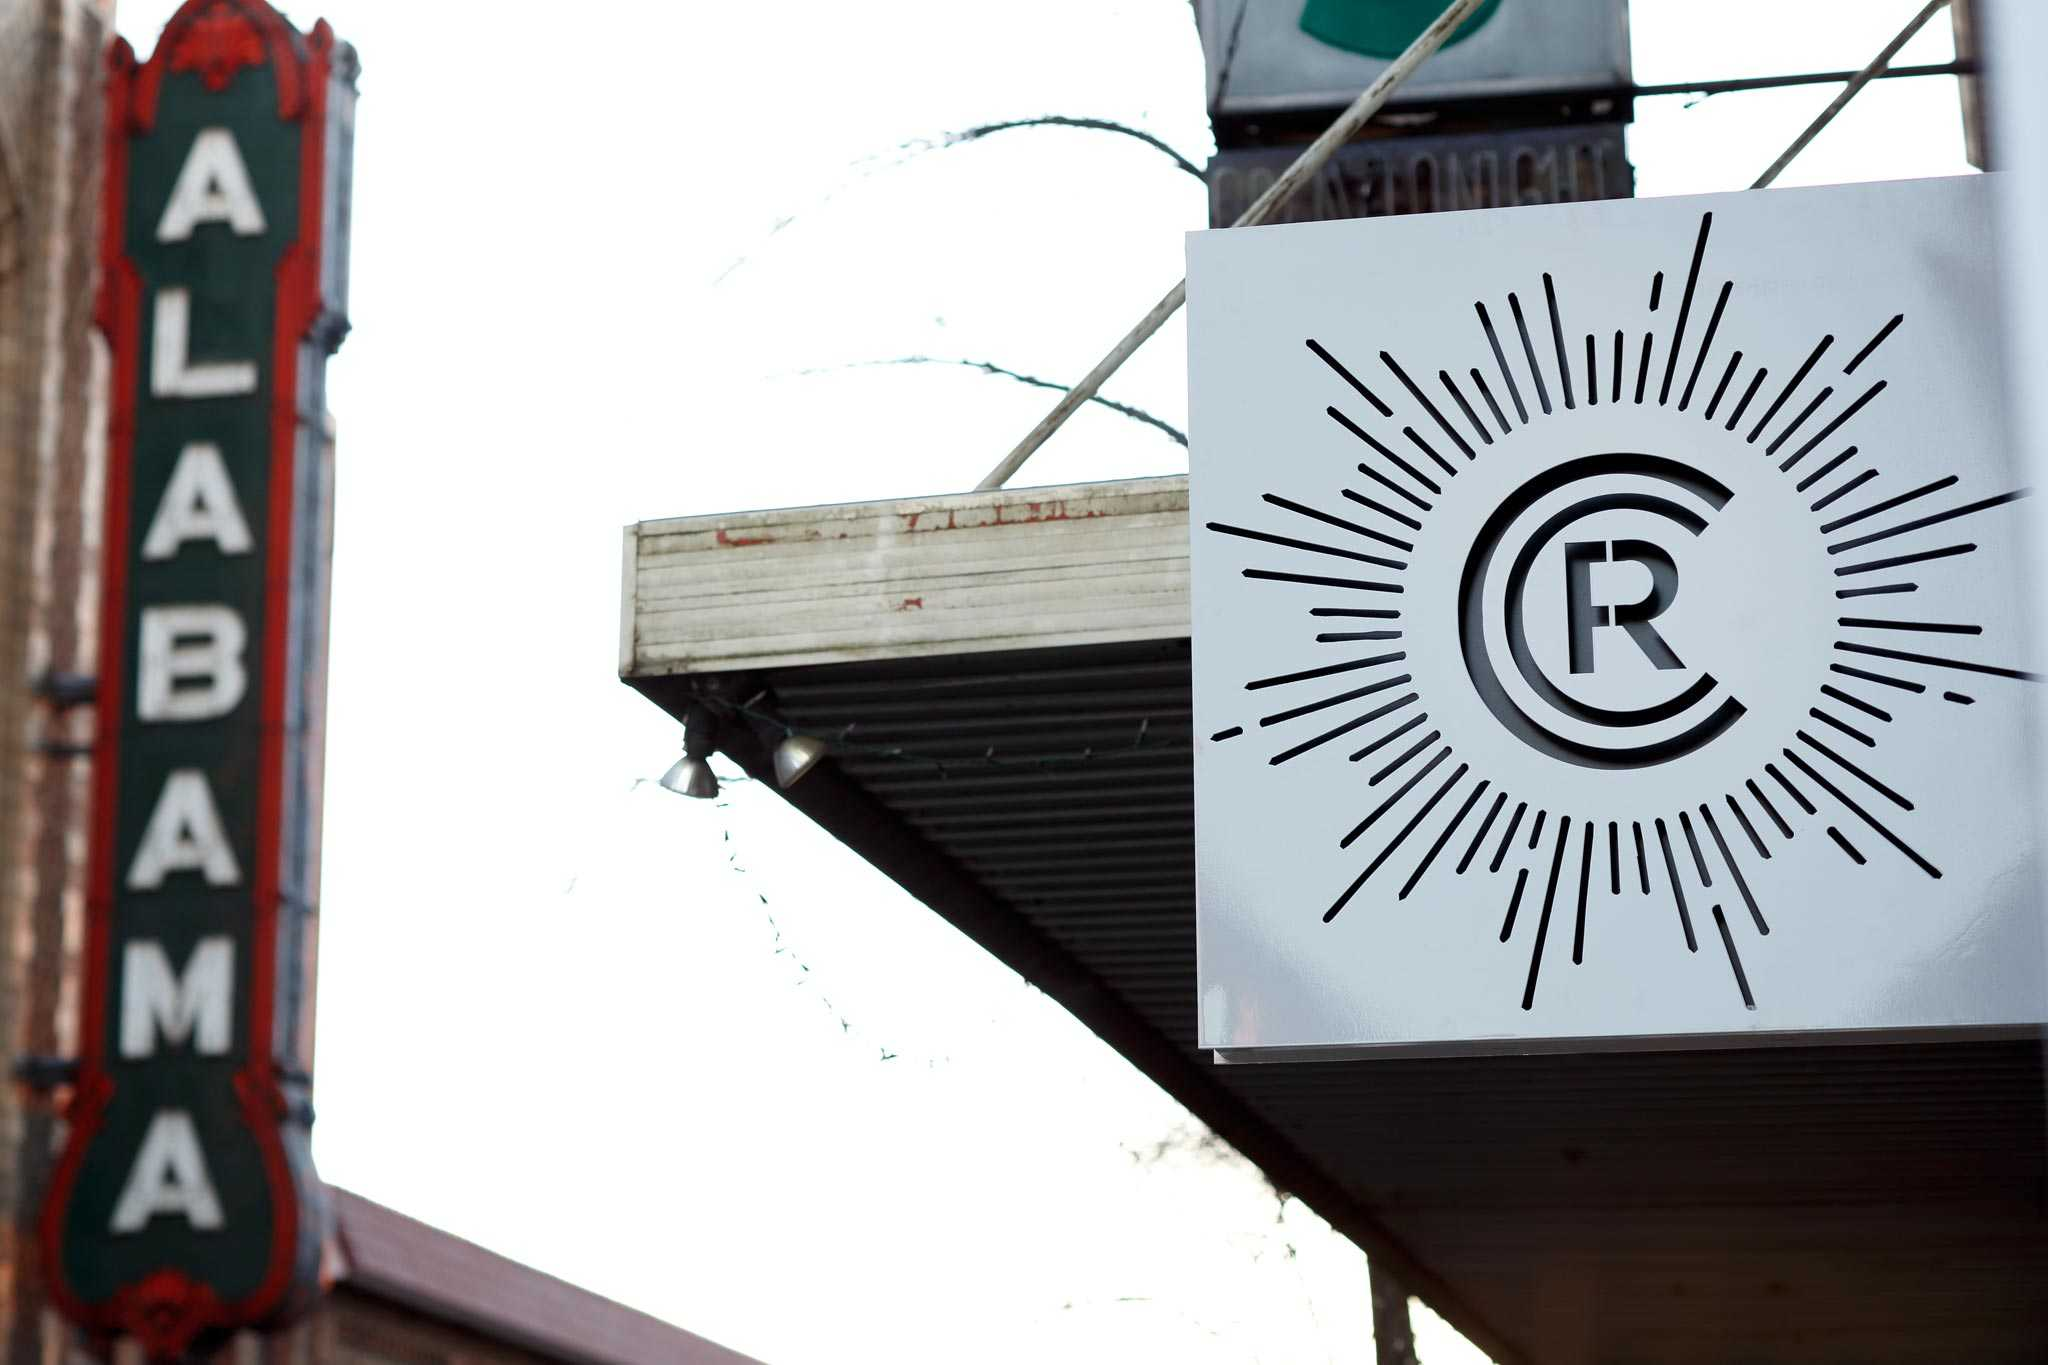 Revelator Birmingham modern coffee shop outside sign close up